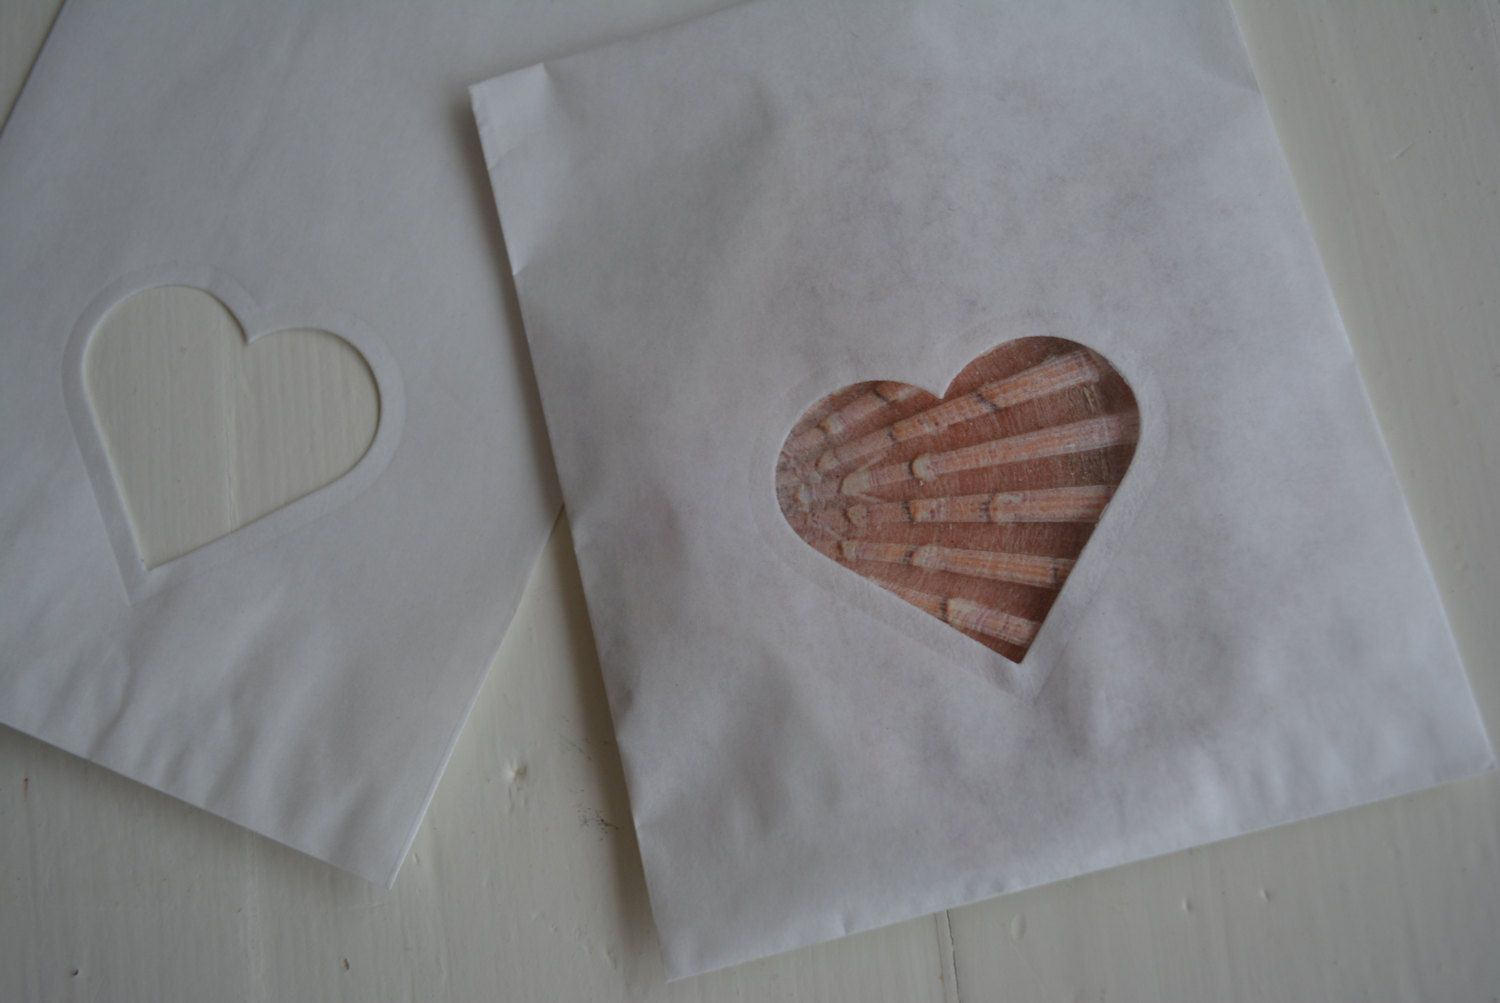 Last Bundle of 150 Small Off white paper bags with a heart window complete with cellophane bag Party favor, birthday party or wedding favor door SierGoed op Etsy